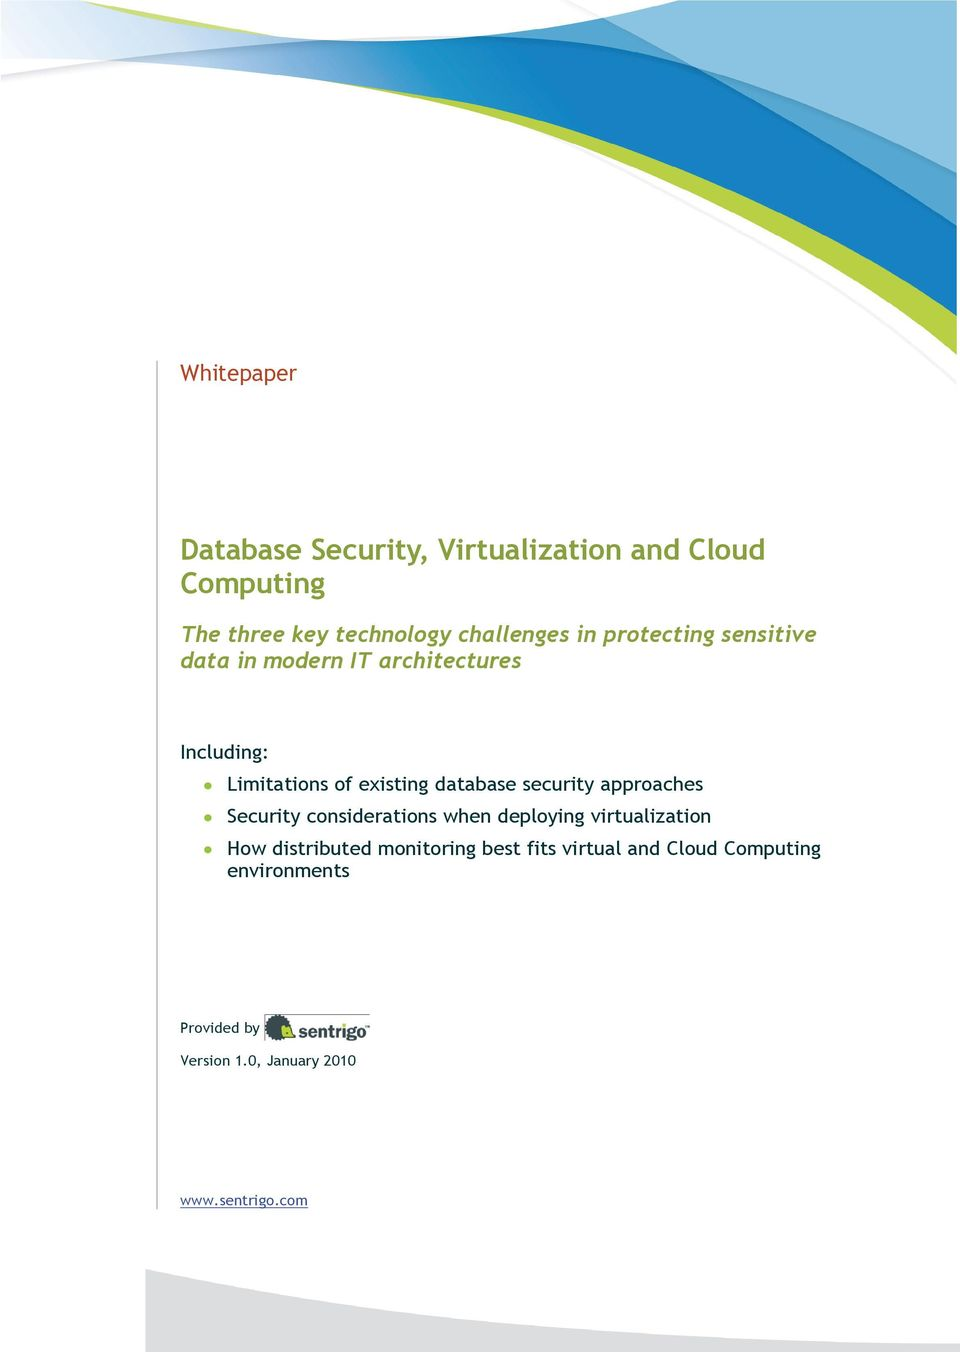 security approaches Security considerations when deploying virtualization How distributed monitoring